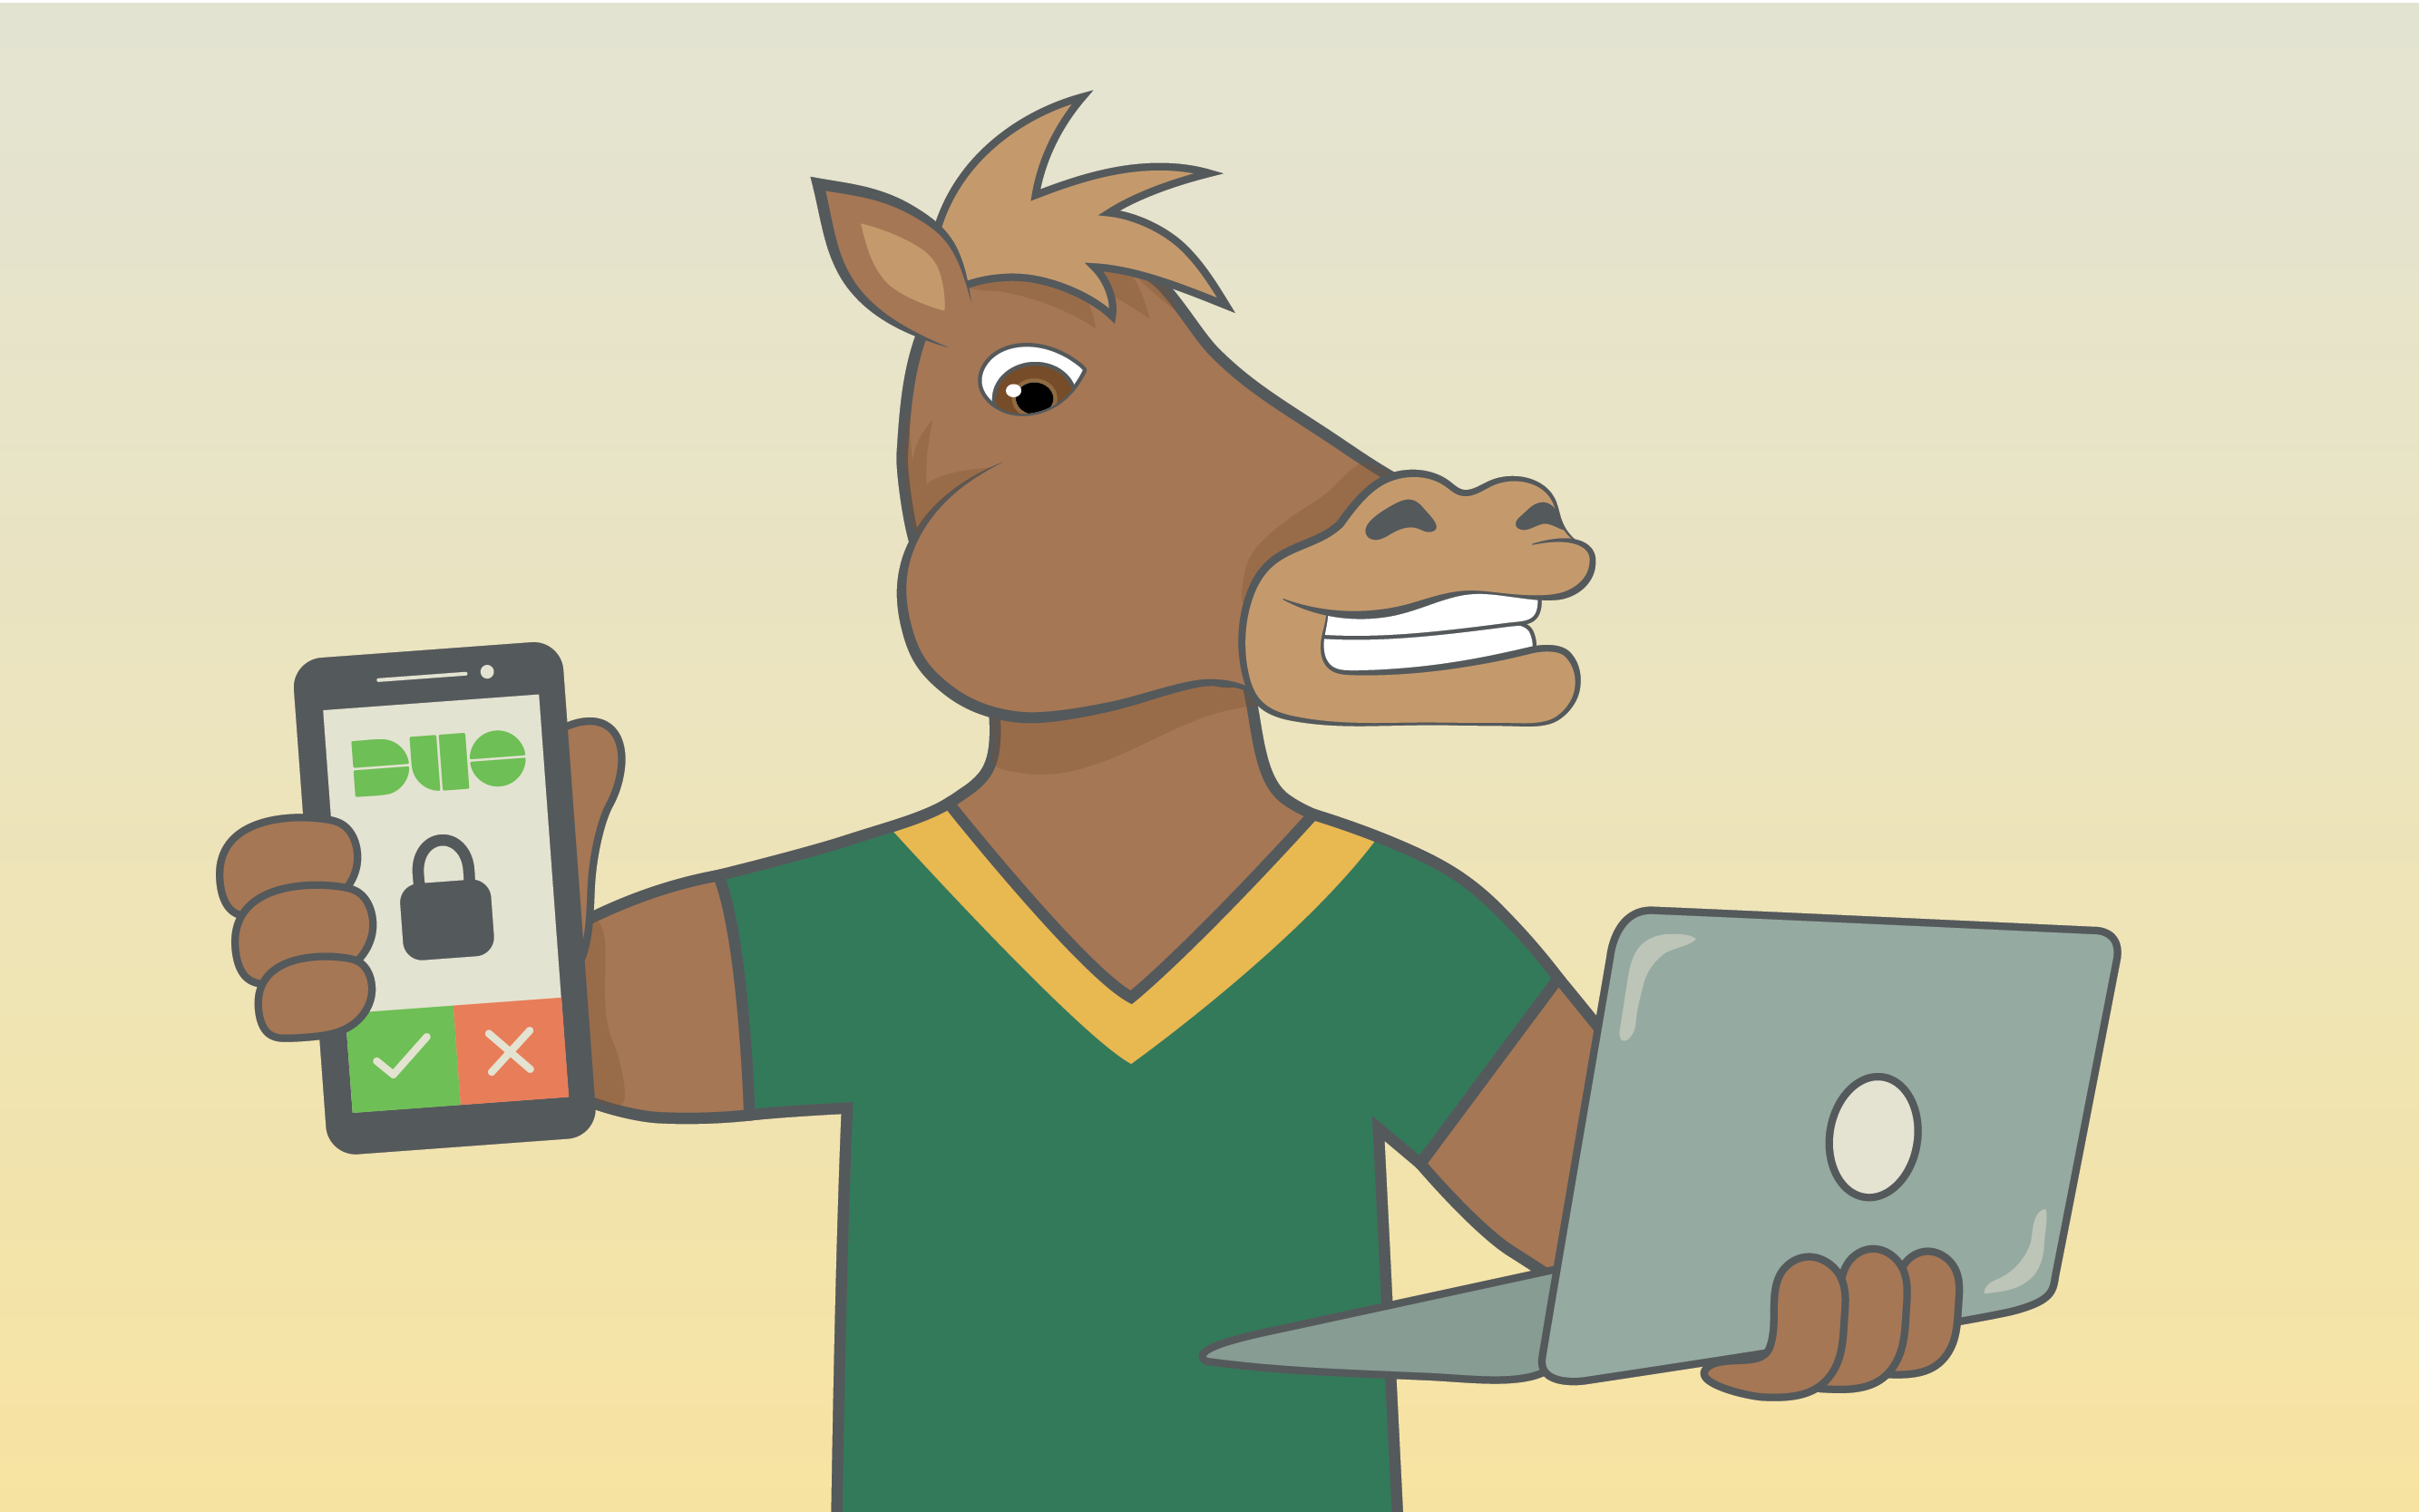 Illustration of Musty the Mustang holding a phone in one hand and a laptop in the other